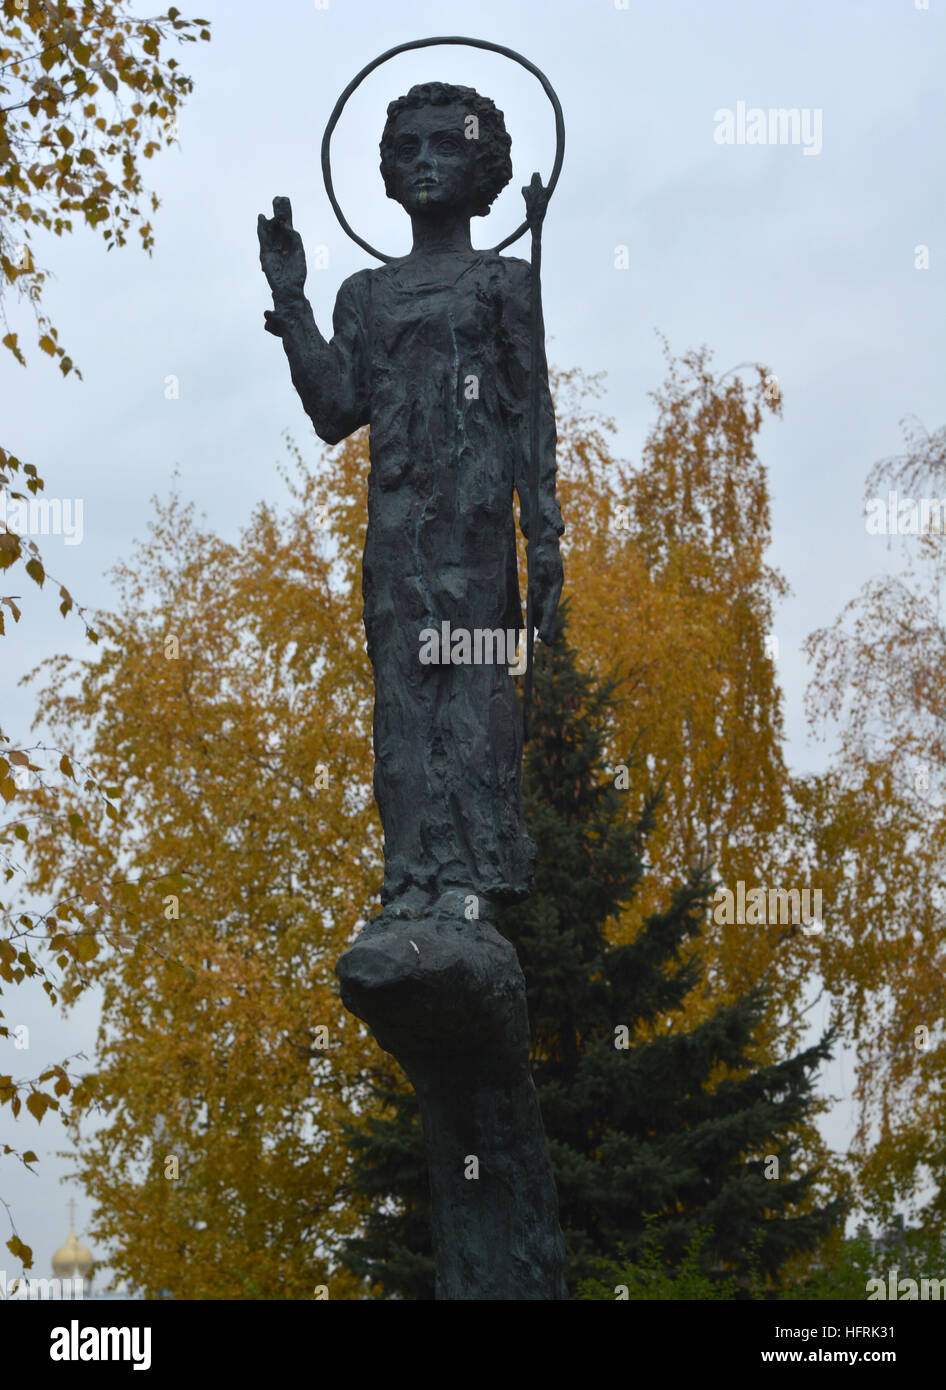 Statues in the Garden of Fallen Heroes, Moscow, Russia - Stock Image